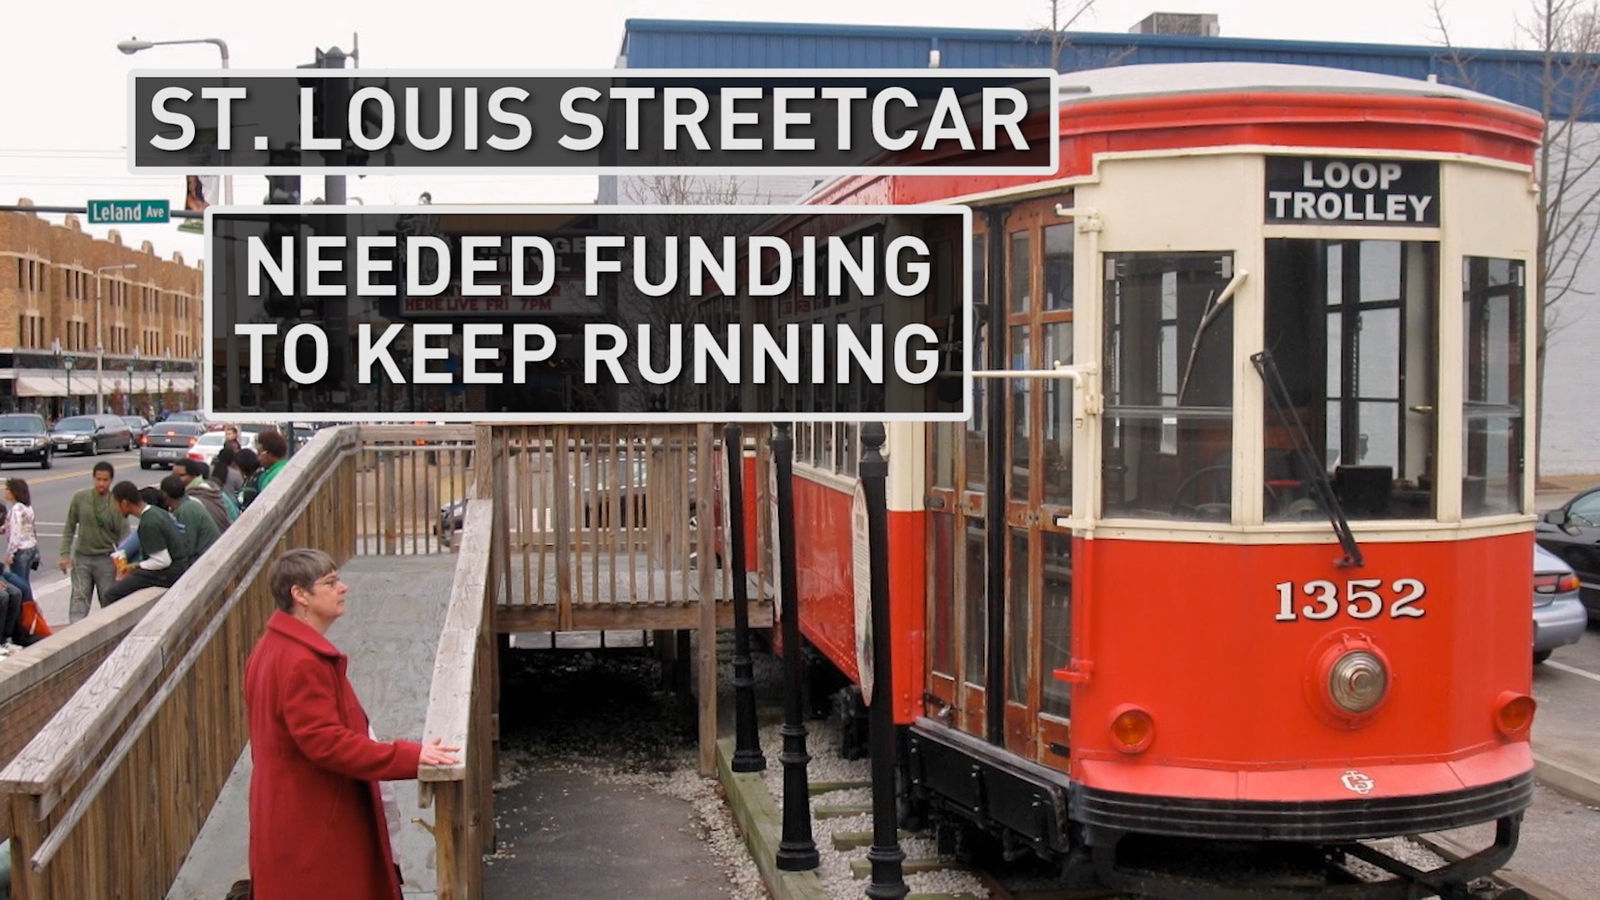 The streetcar in St. Louis has struggled for funding and needed a recent infusion of cash to continue running (Photo: Alex Brauer, Sinclair Broadcast Group)<p></p>